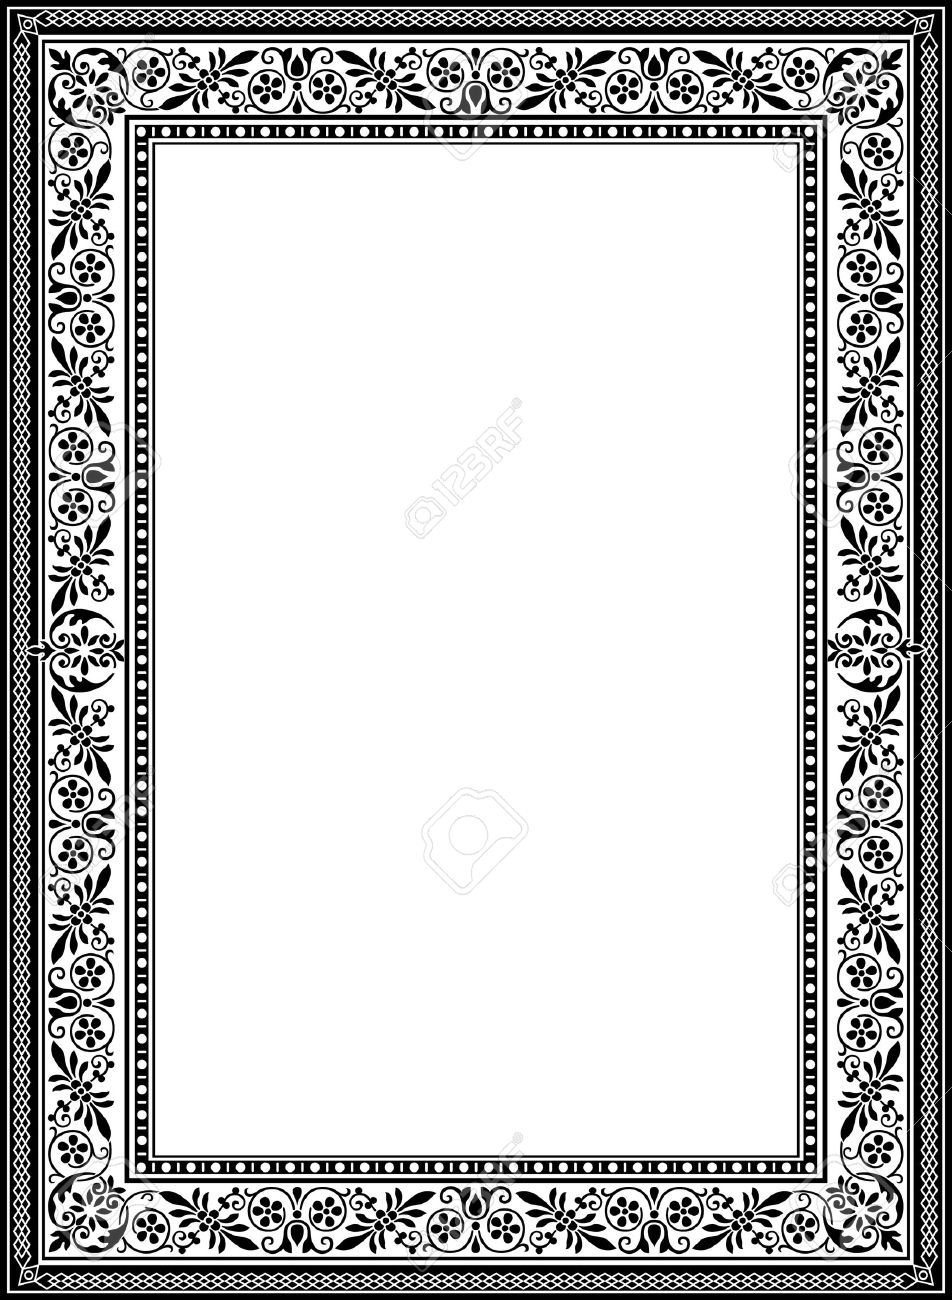 Marvelous Decorative Western Old Frame Border Stock Vector   23185494